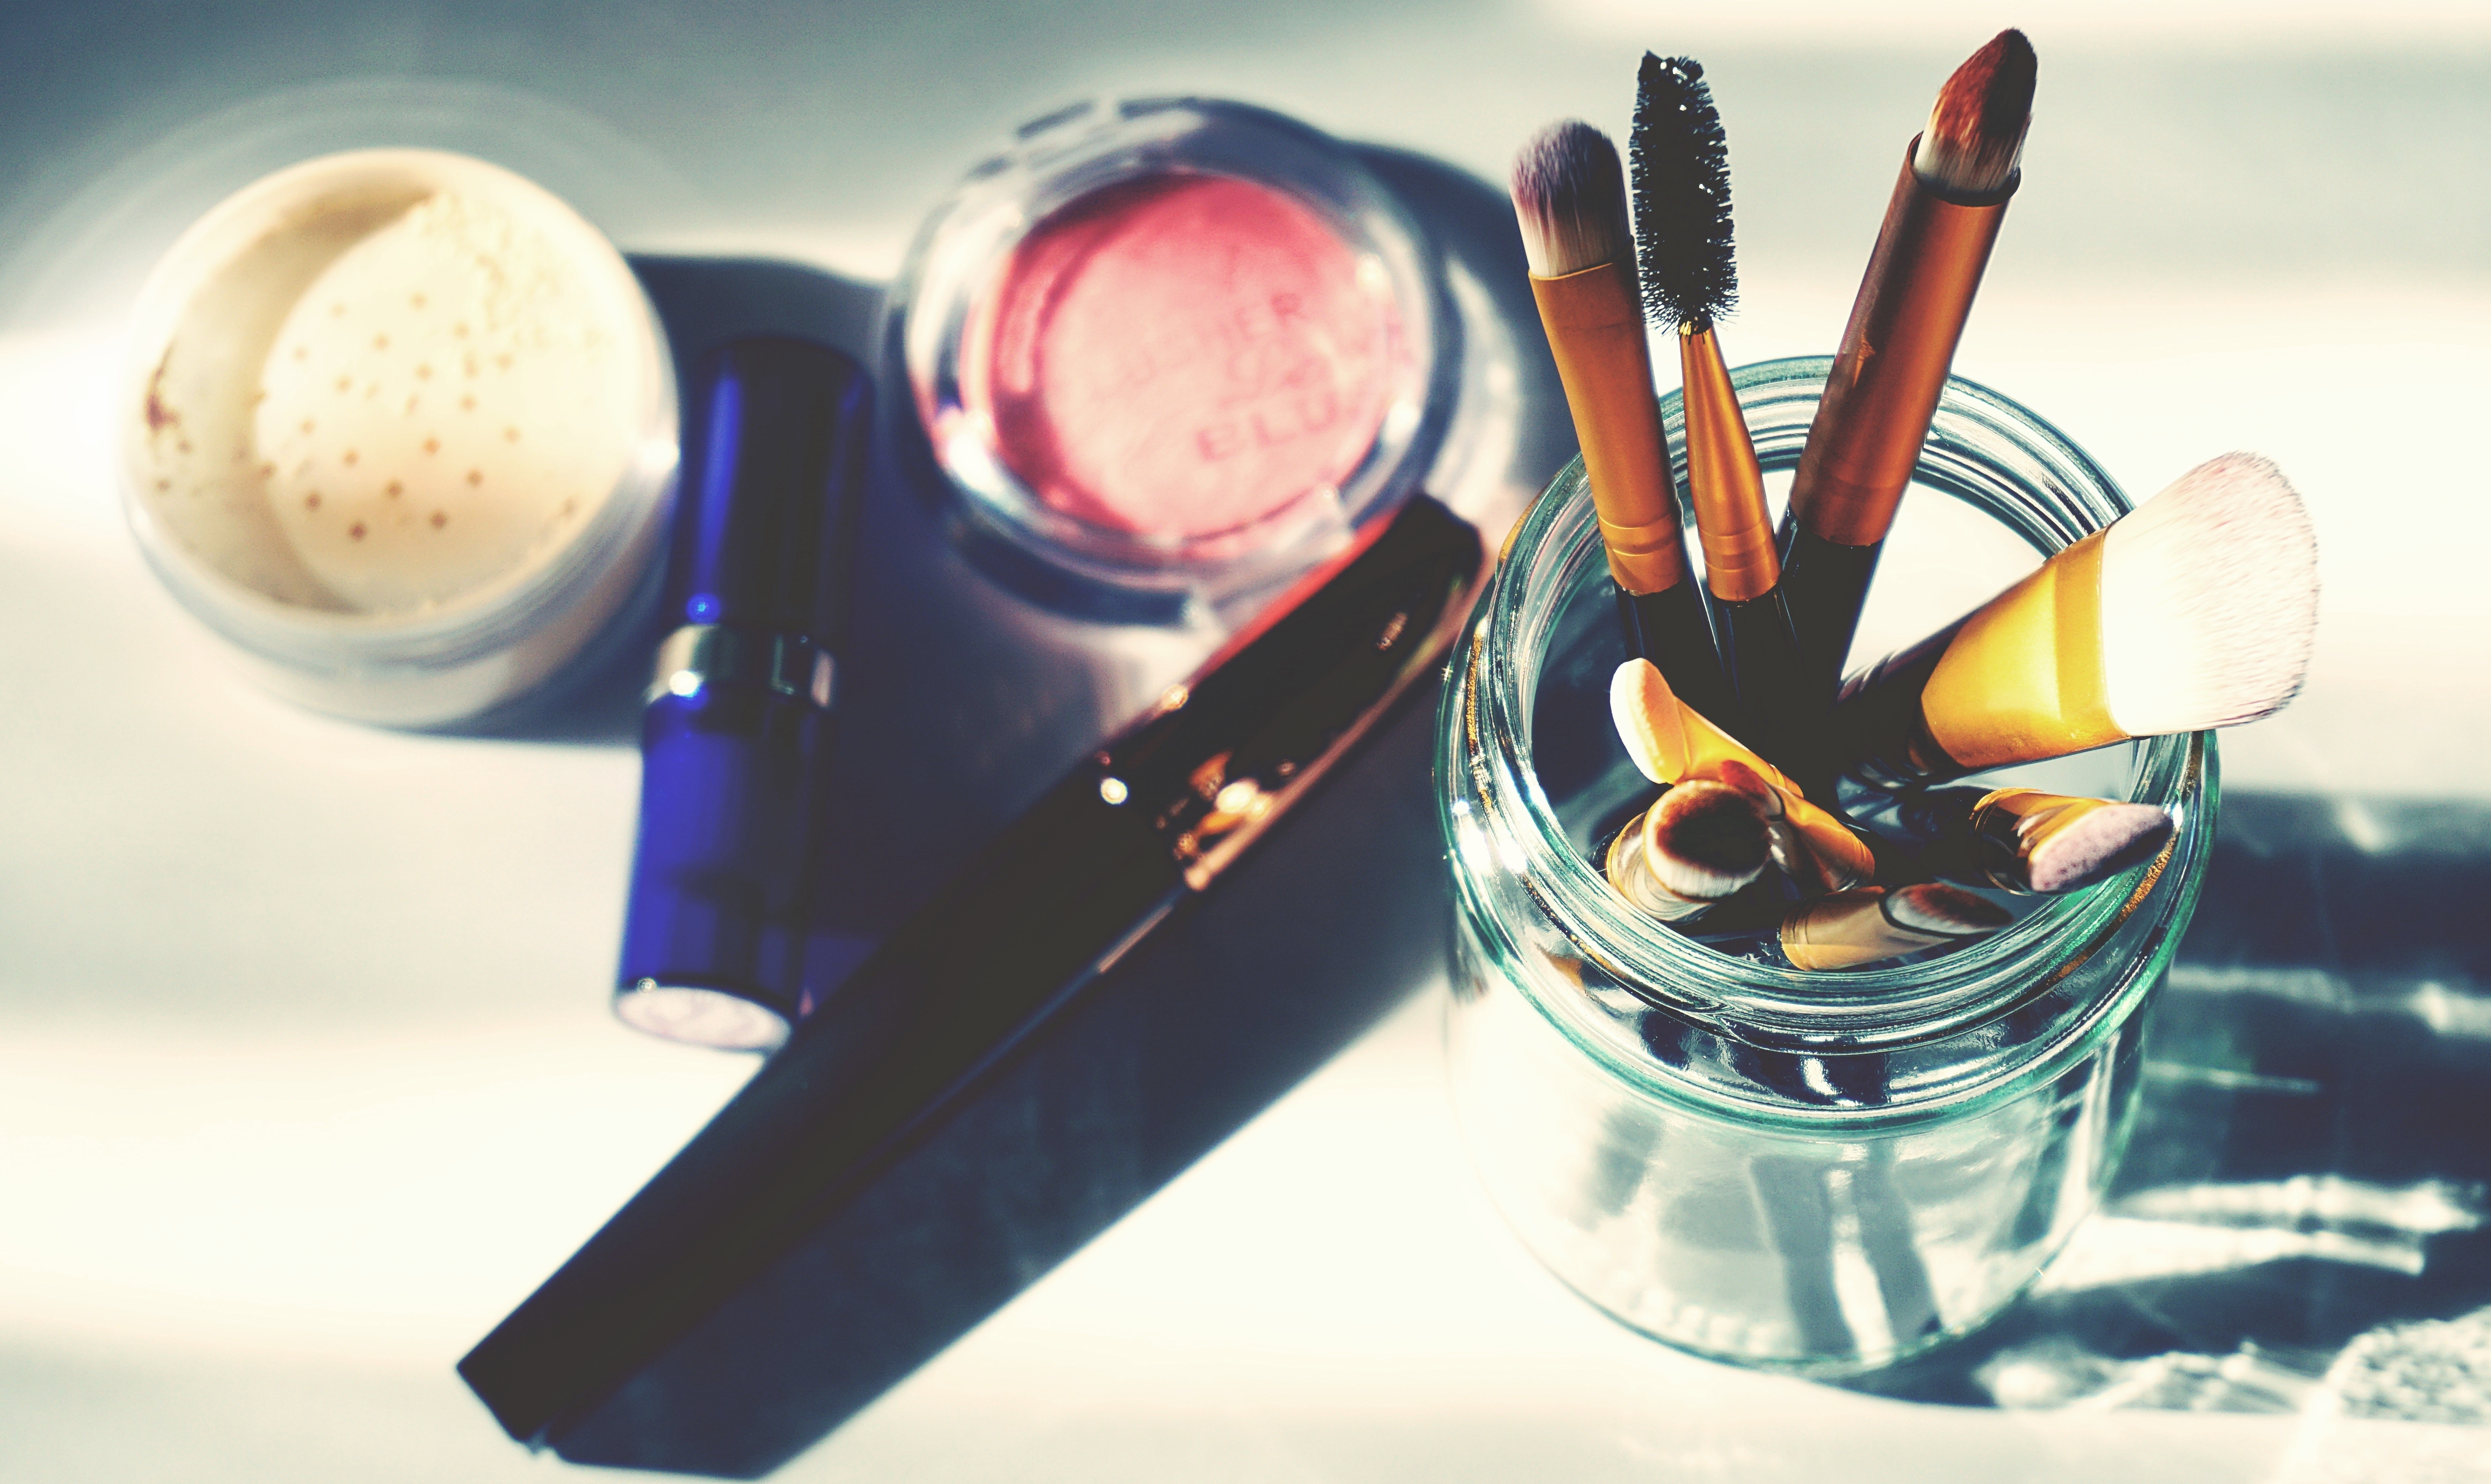 Required Documentation to Register Made in Nigeria Cosmetics